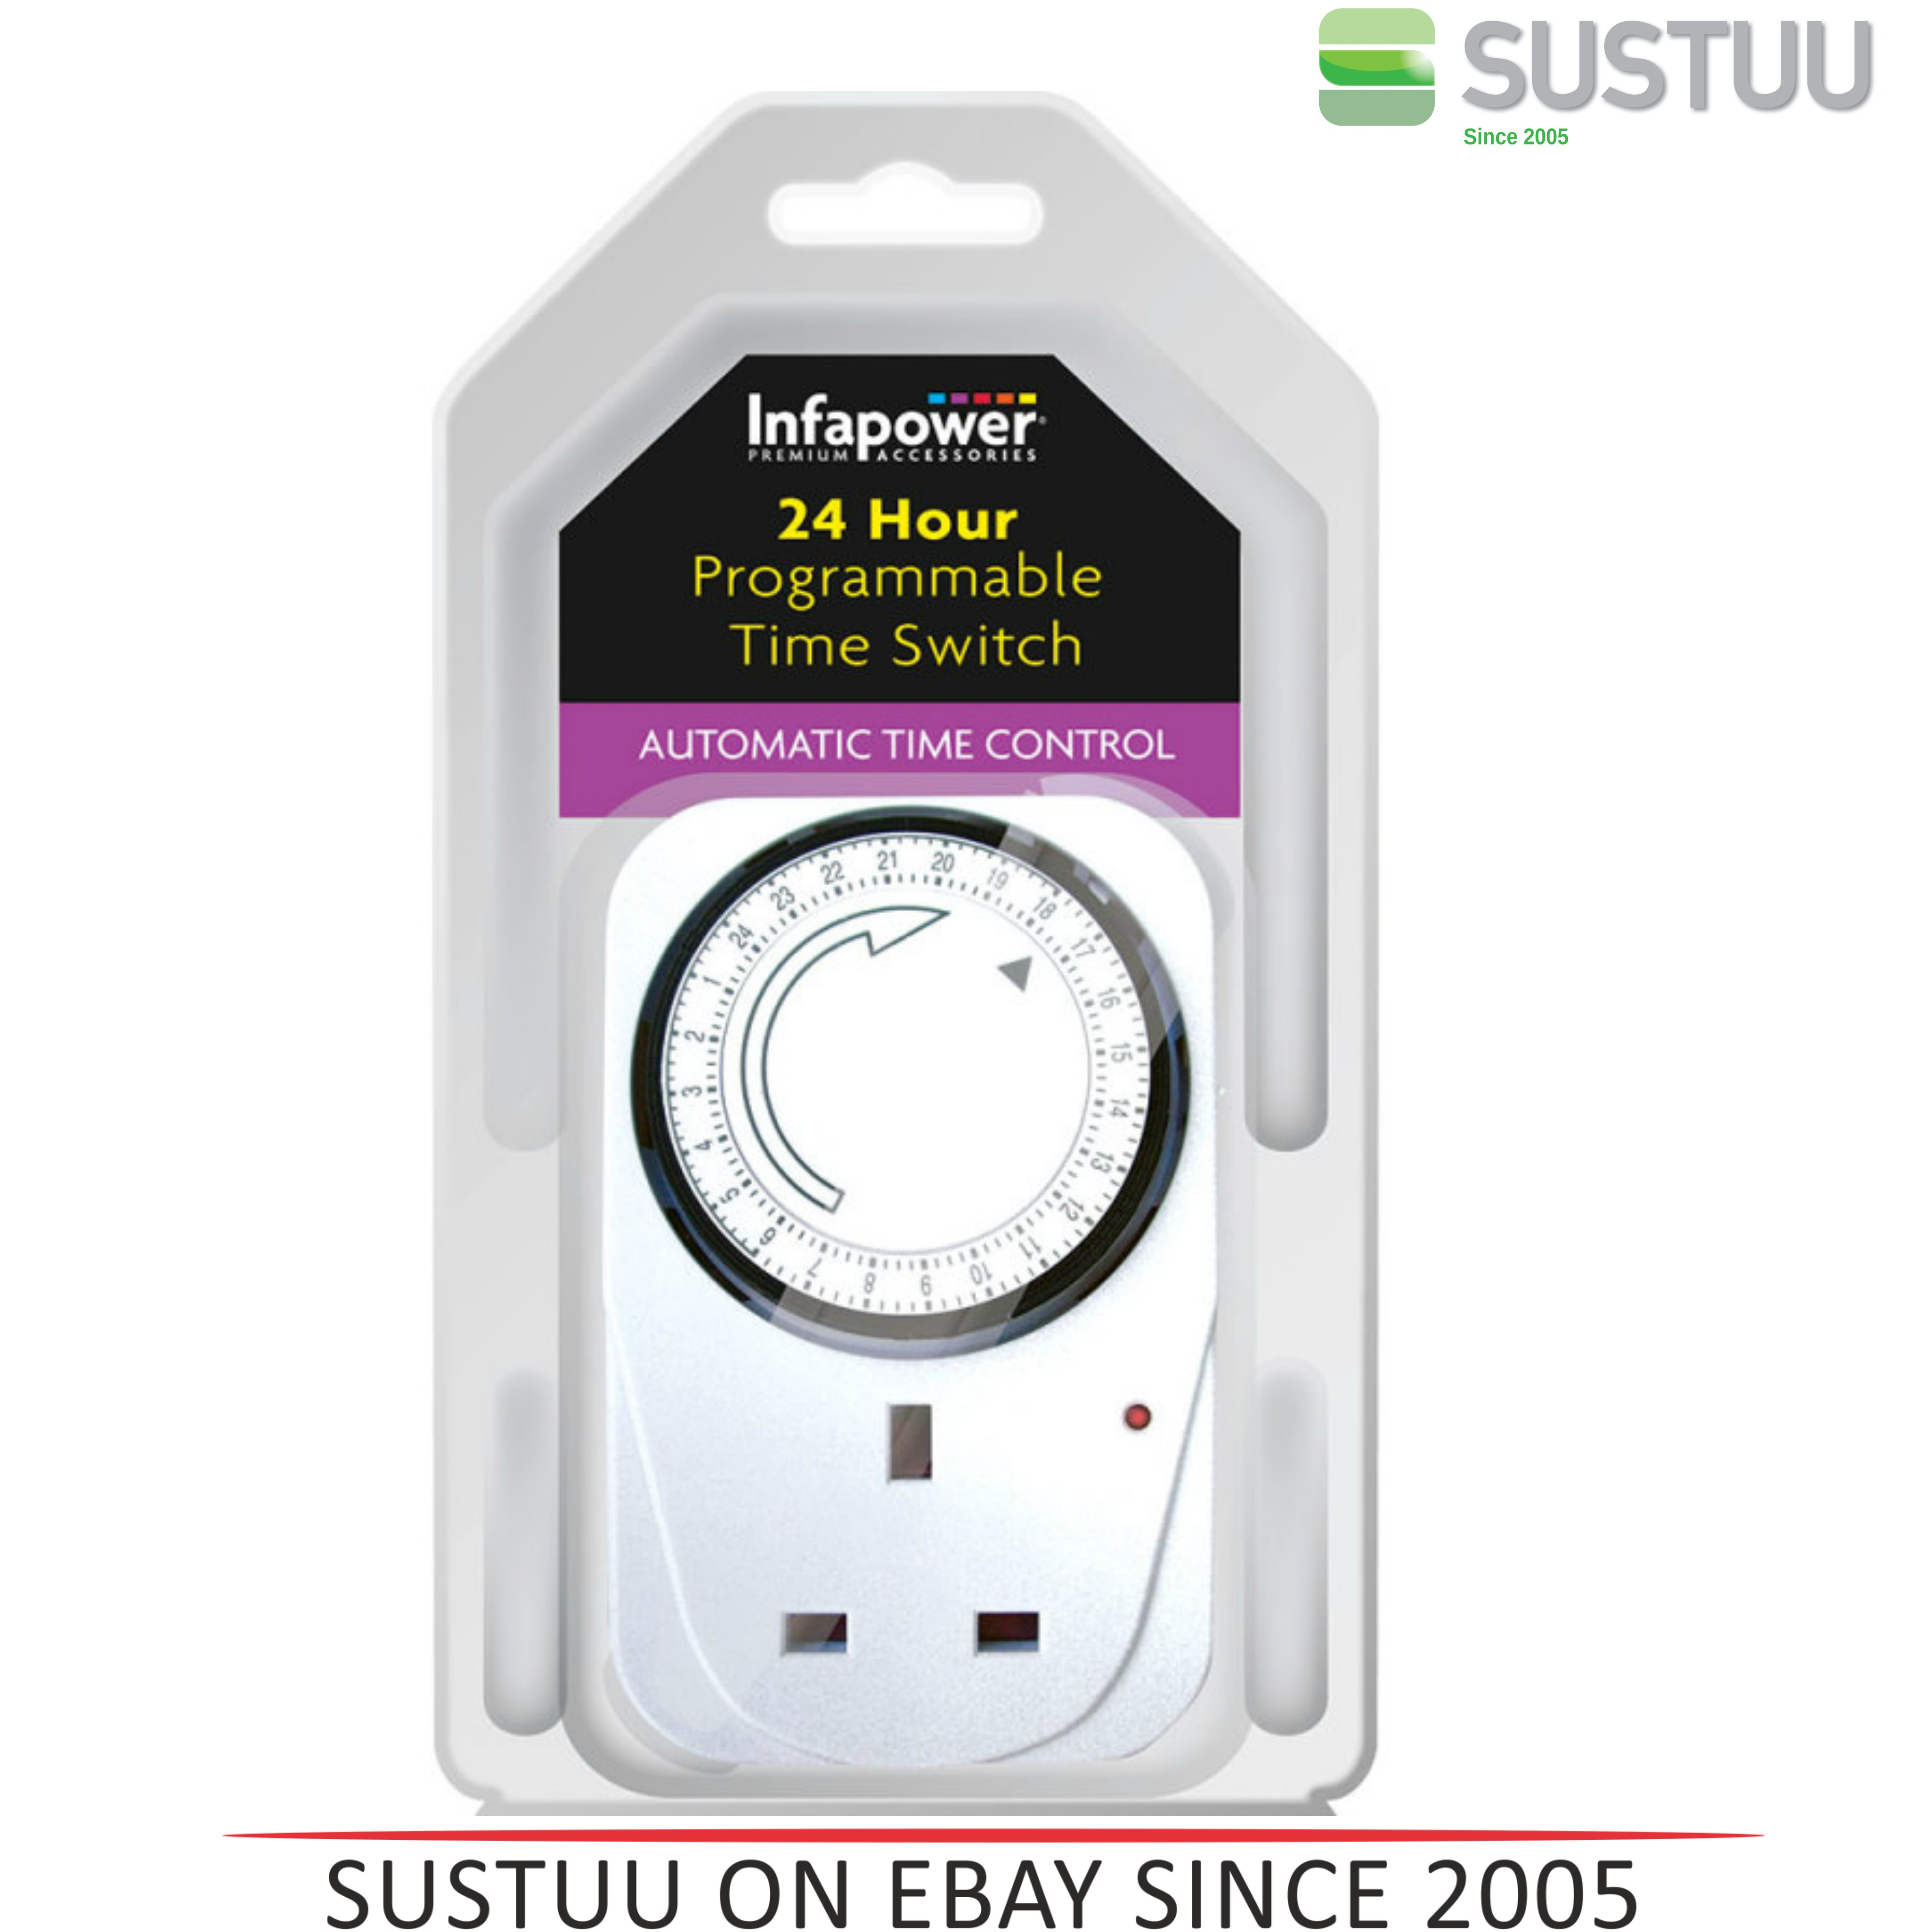 Infapower X011 Programmable Automatic 24 hour Time Switcher  - White